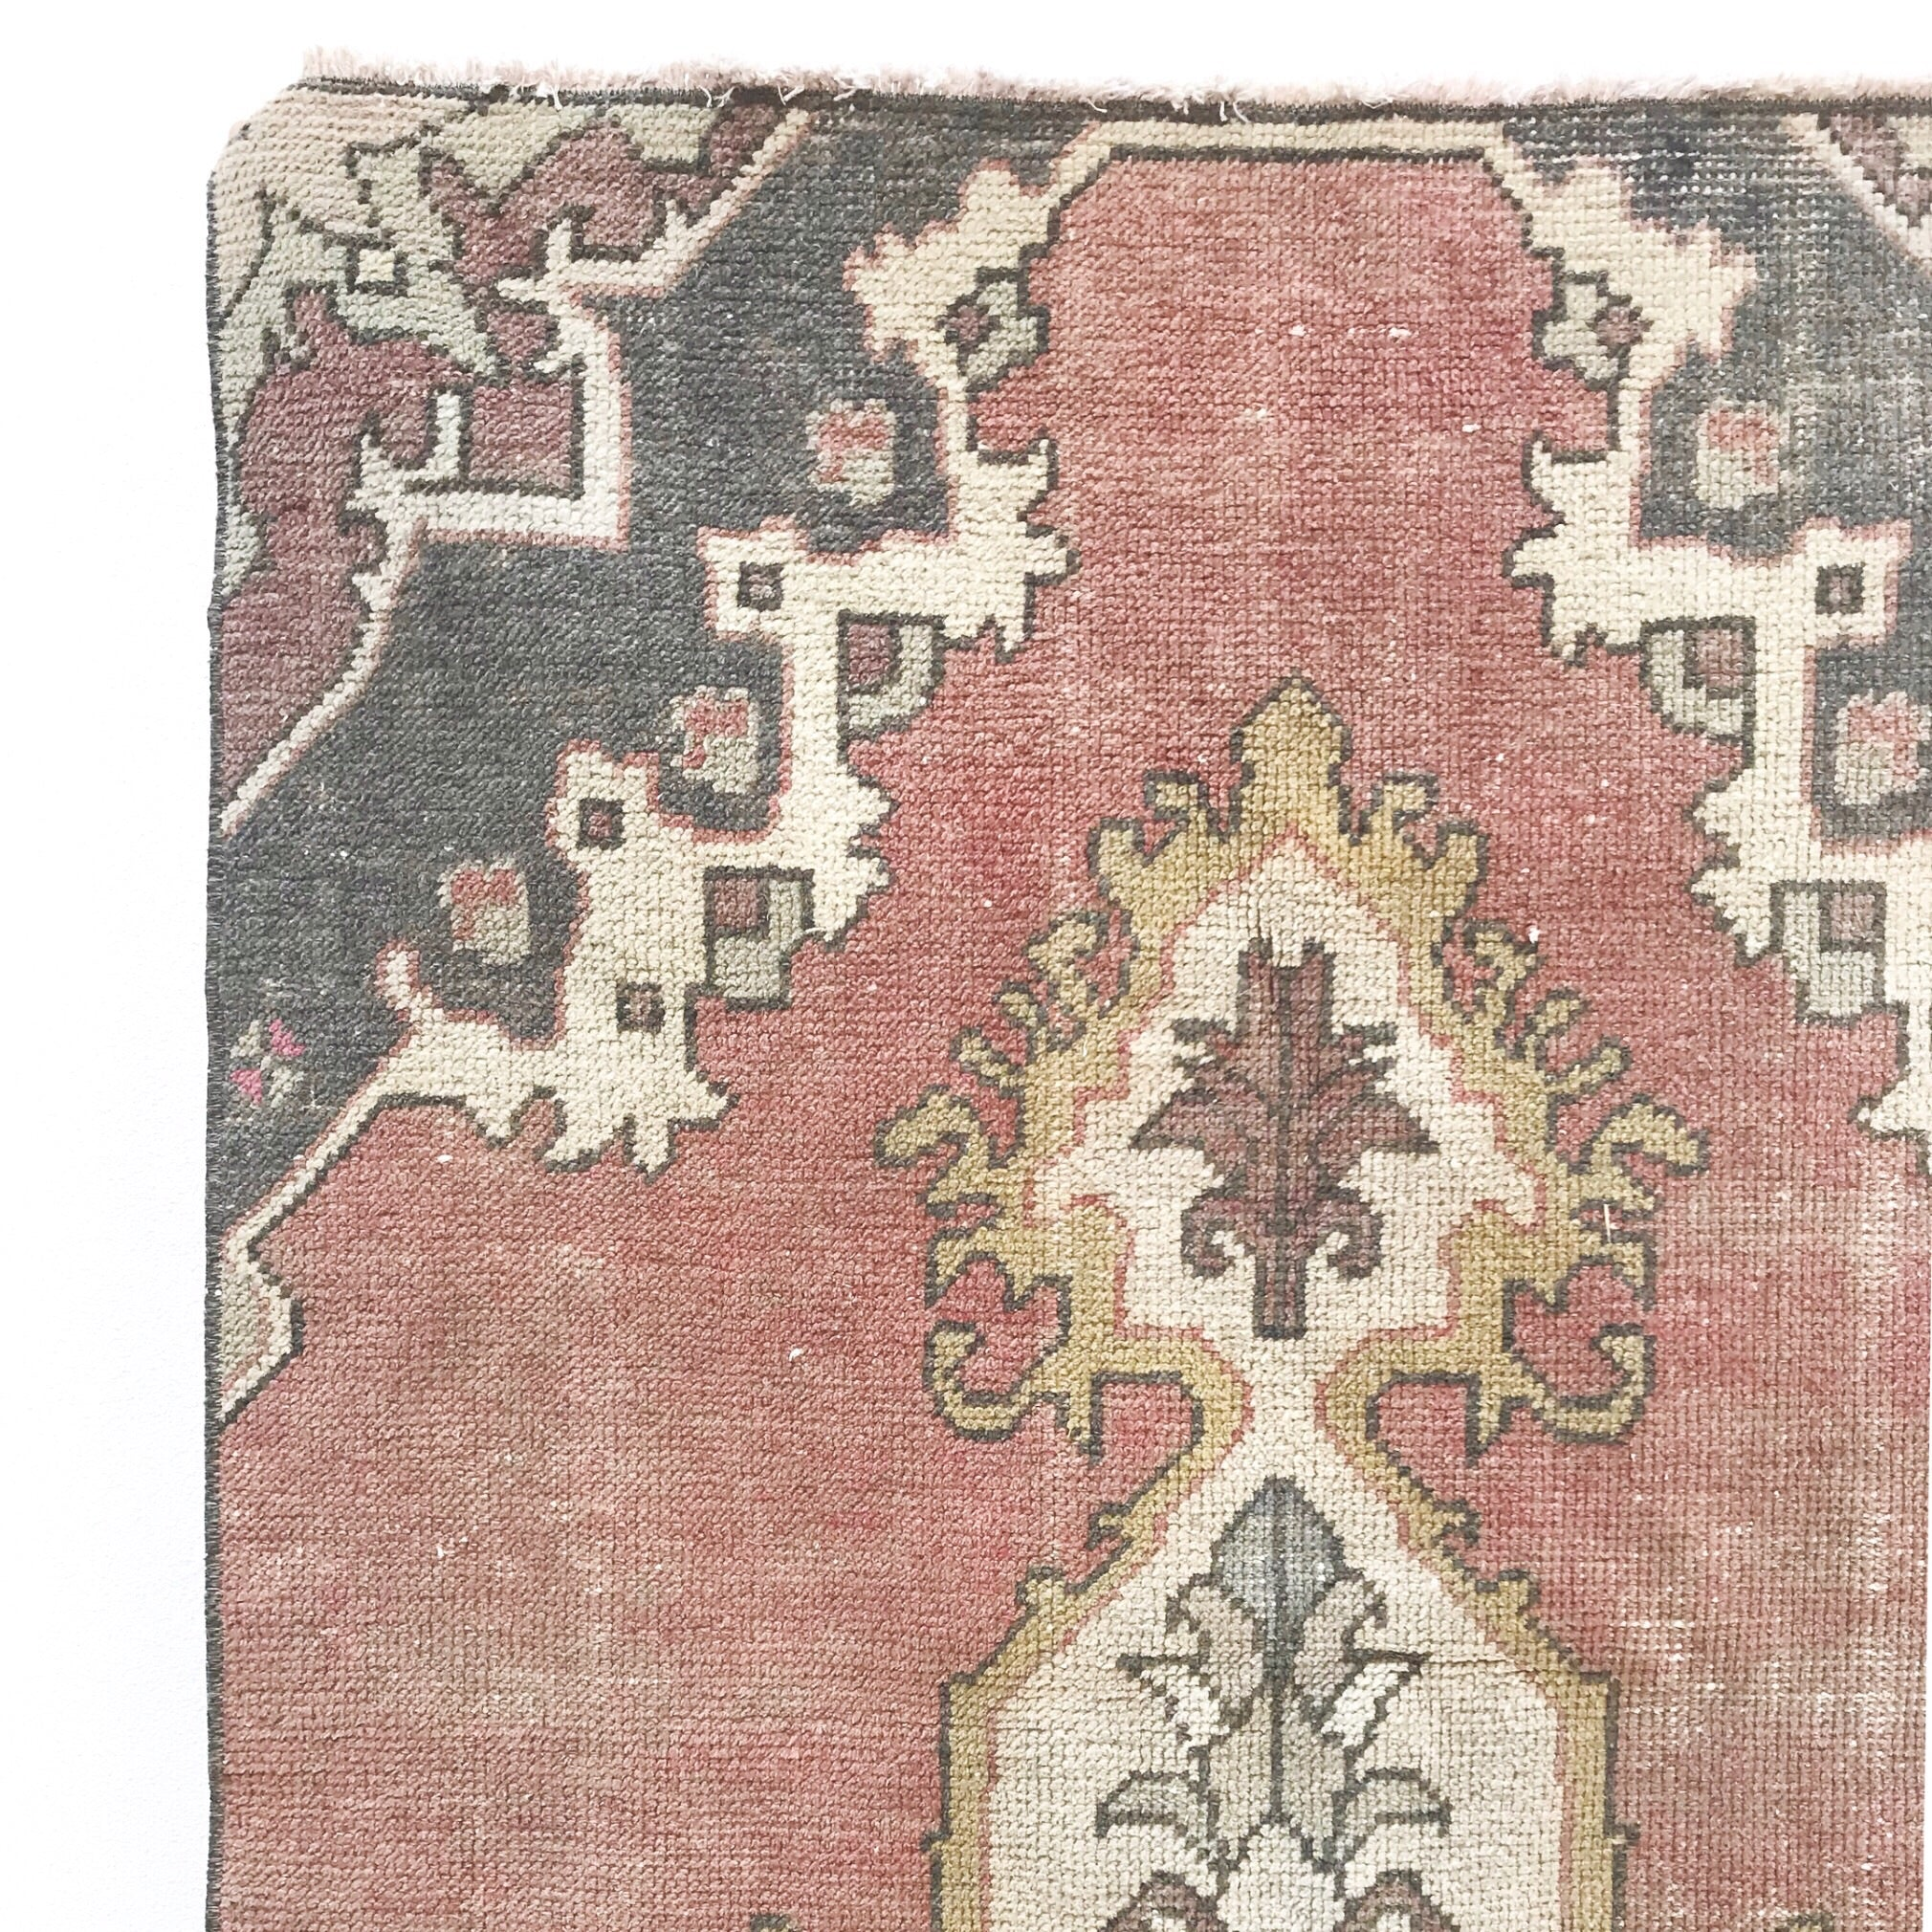 The Lida handwoven runner is a vintage Turkish avanos rug. Beautiful dusty pinks and grays with yellow accents. 3x7'10